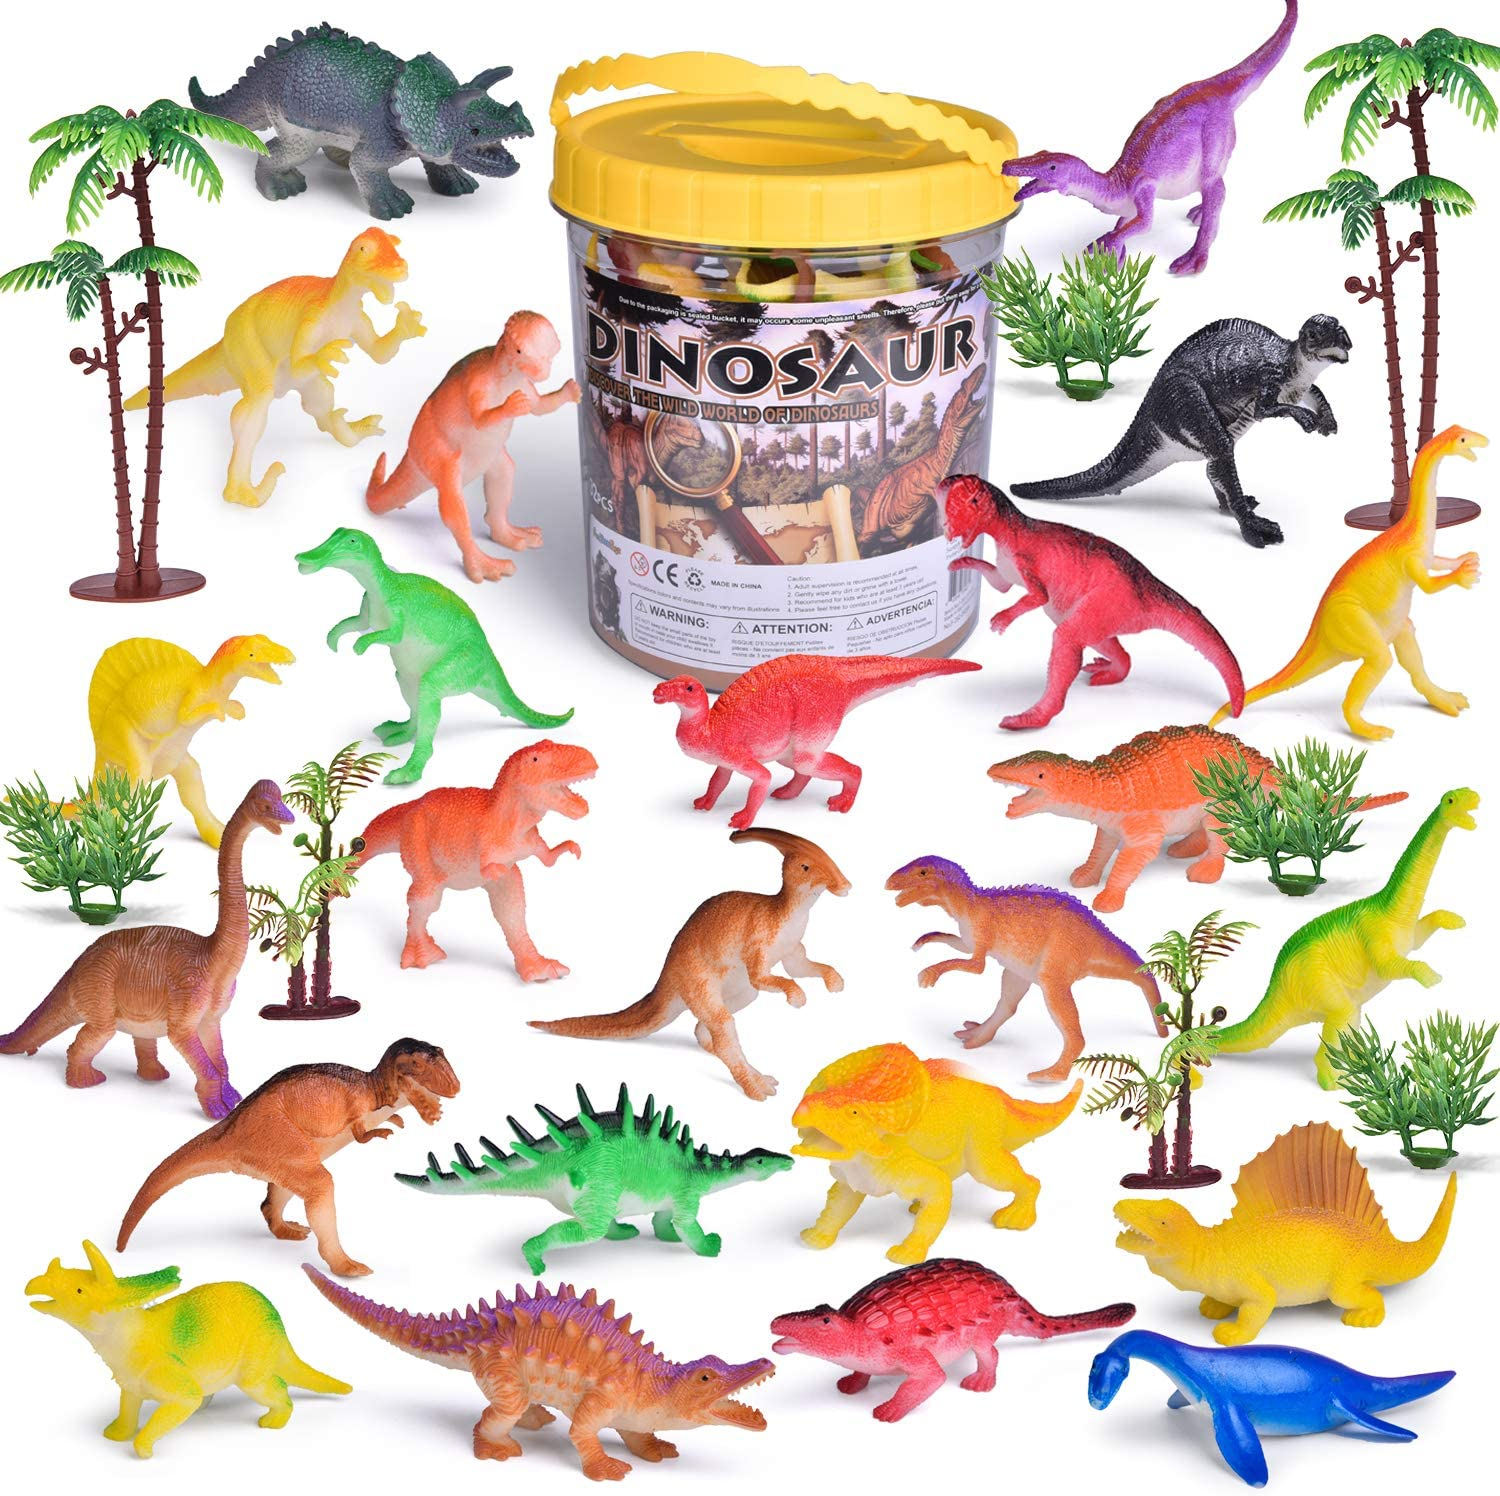 Easter Fun Toys for Kids 12 Pack Mini Dinosaur Animals Filled Colorful Easter Eggs Goody Bag Fillers Rewards Party Favors